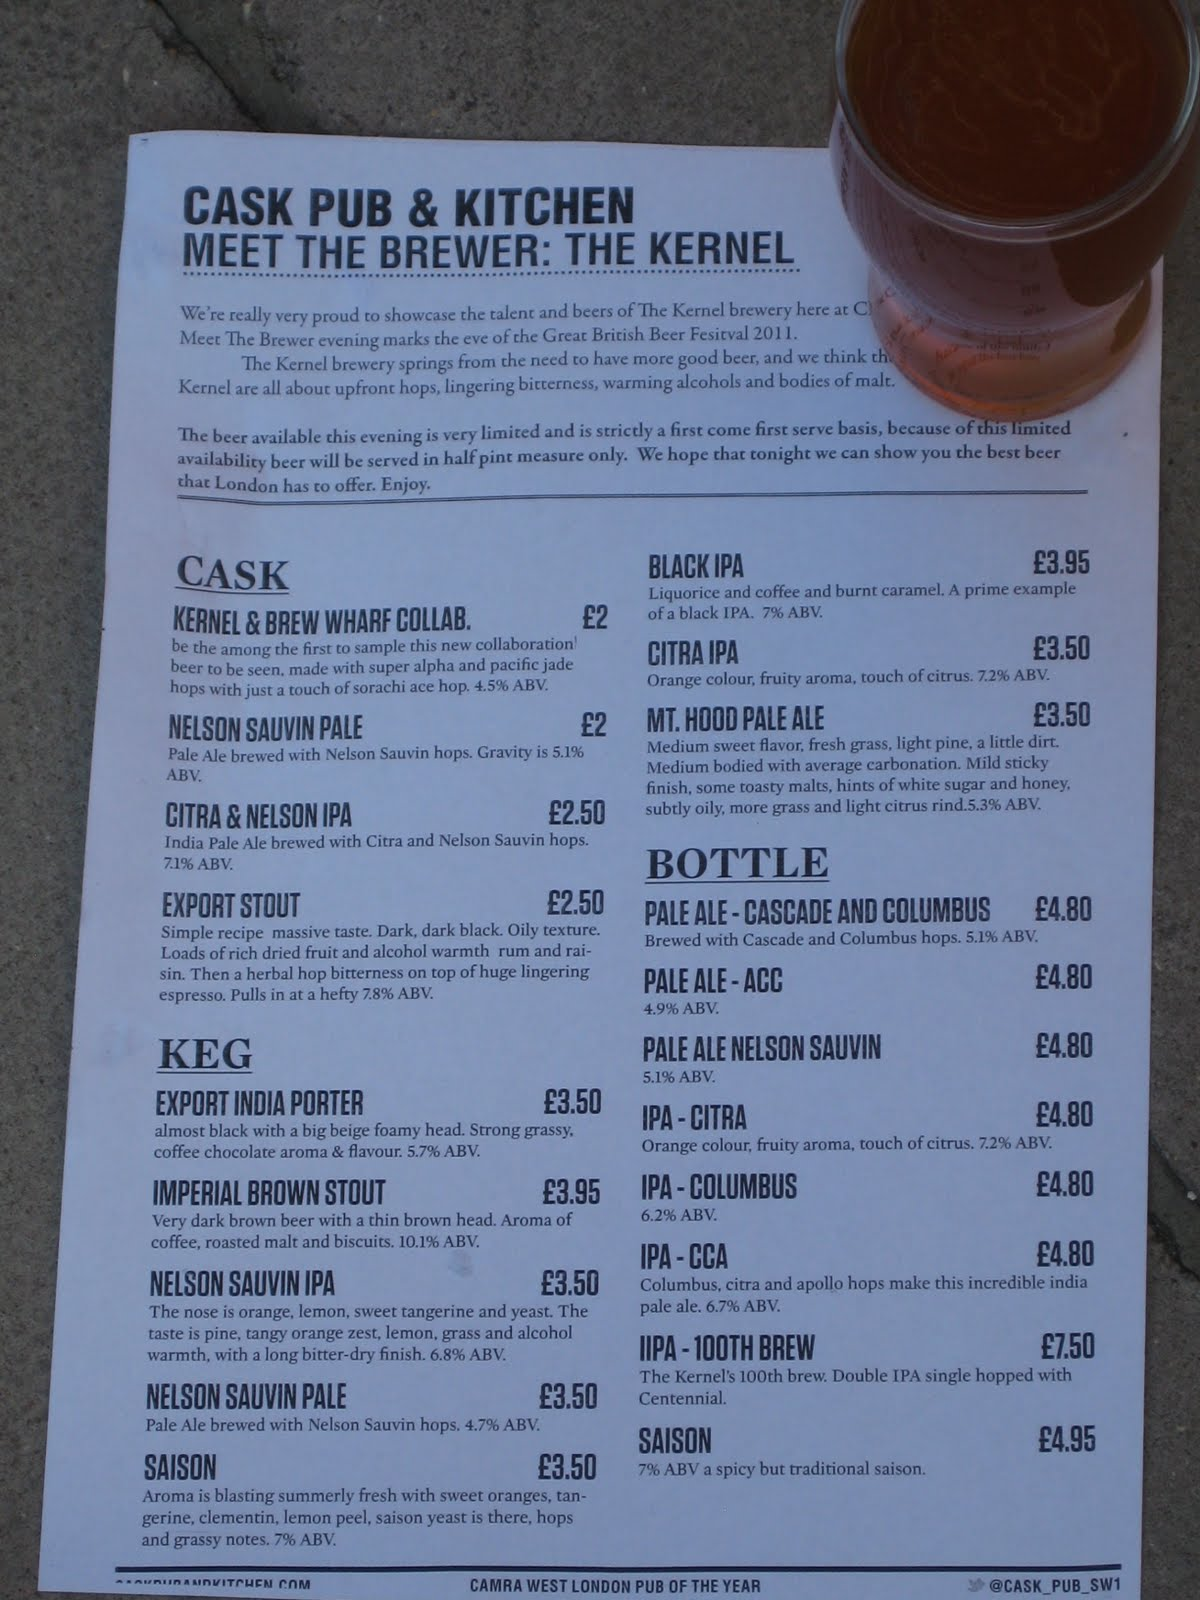 the beer monkey: The Kernel at Cask Pub and Kitchen